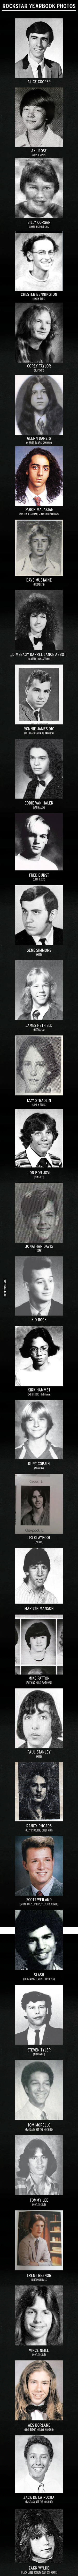 Rockstar Yearbook Photos